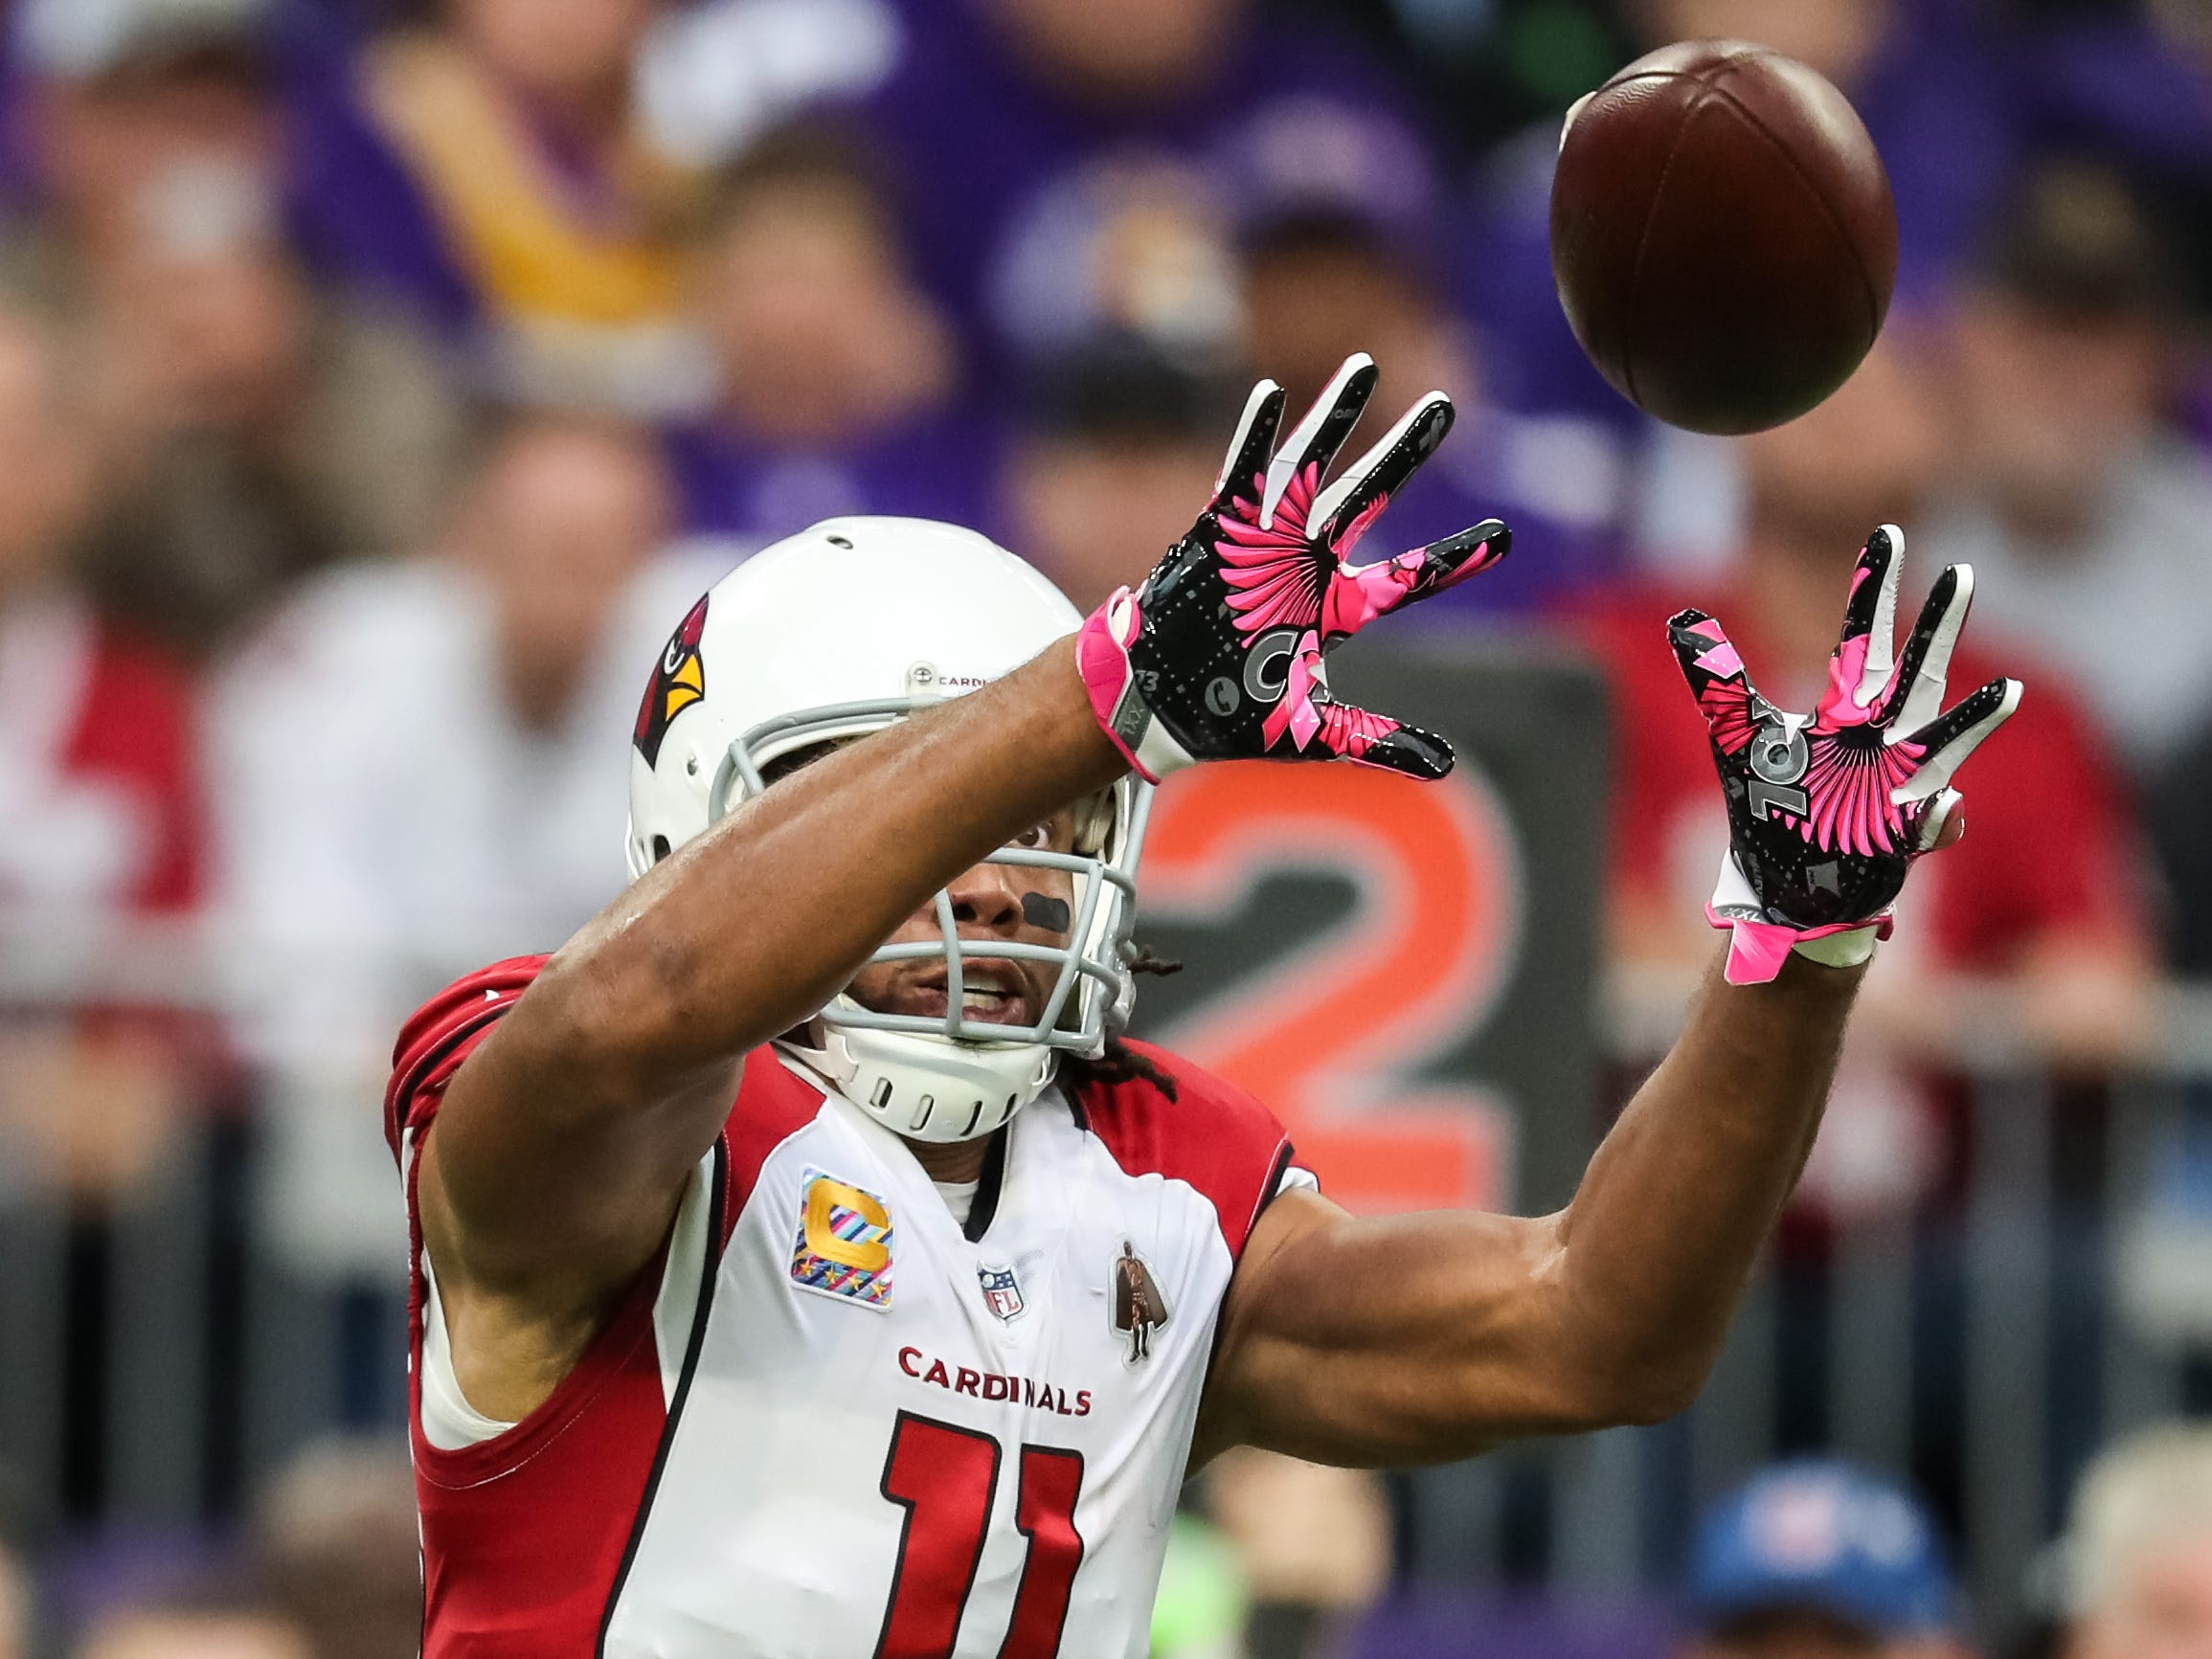 Oct 14, 2018; Minneapolis, MN, USA; Arizona Cardinals wide receiver Larry Fitzgerald (11) catches a pass during the first quarter against the Minnesota Vikings at U.S. Bank Stadium. Mandatory Credit: Brace Hemmelgarn-USA TODAY Sports